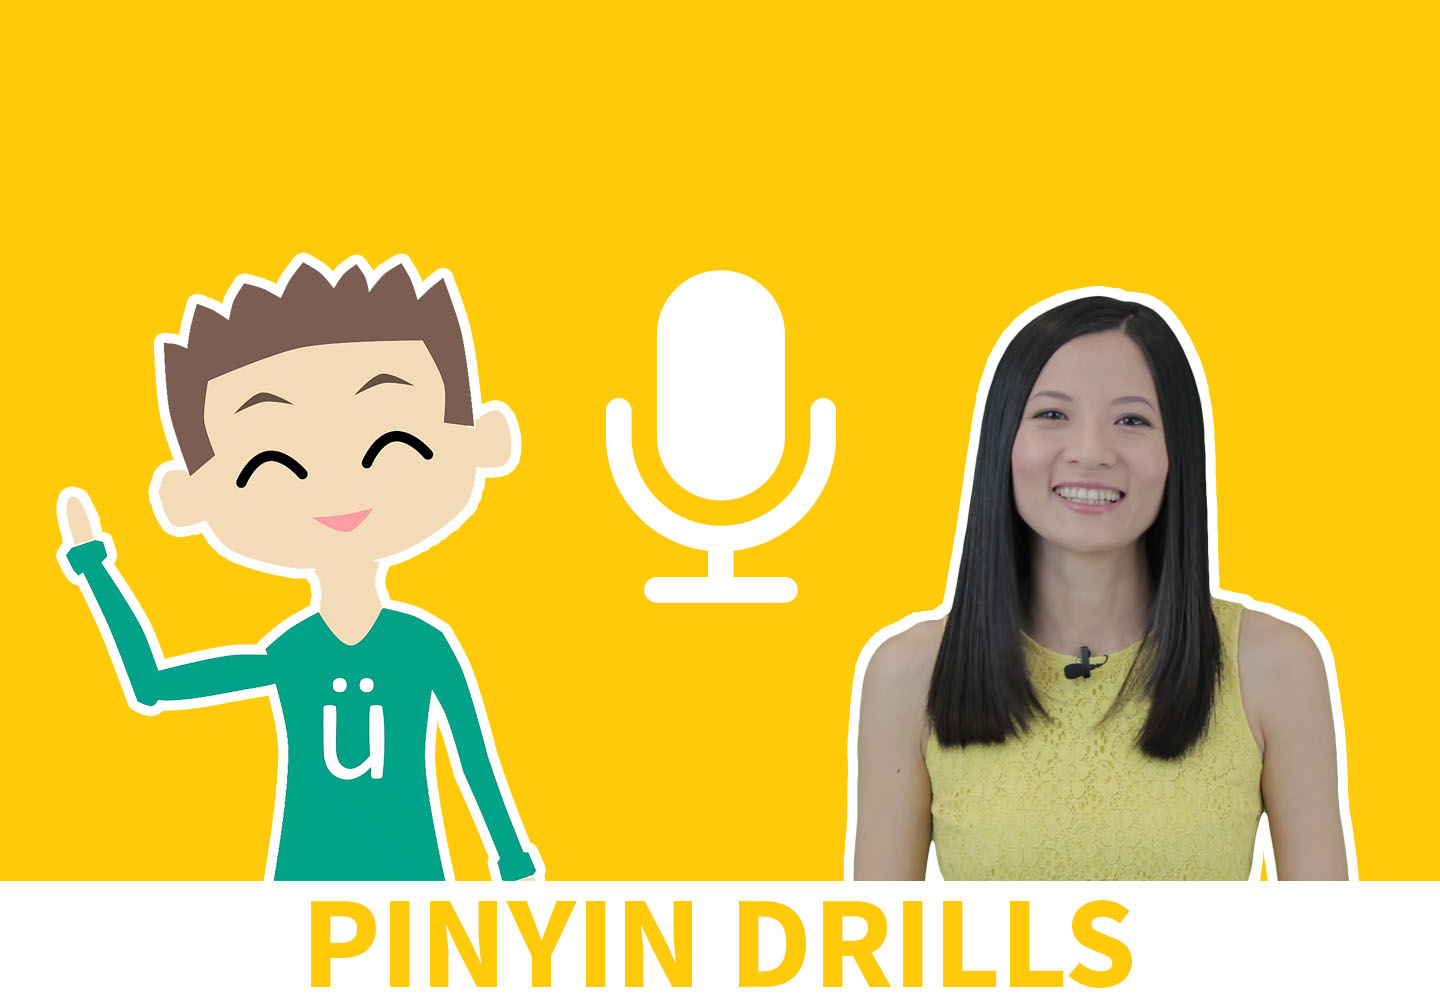 Learn Chinese Pinyin pronunciation with ChineseFor.Us. Get 13 Mandarin Pinyin lessons & 270 listening questions - the best Chinese Pinyin Course there is!